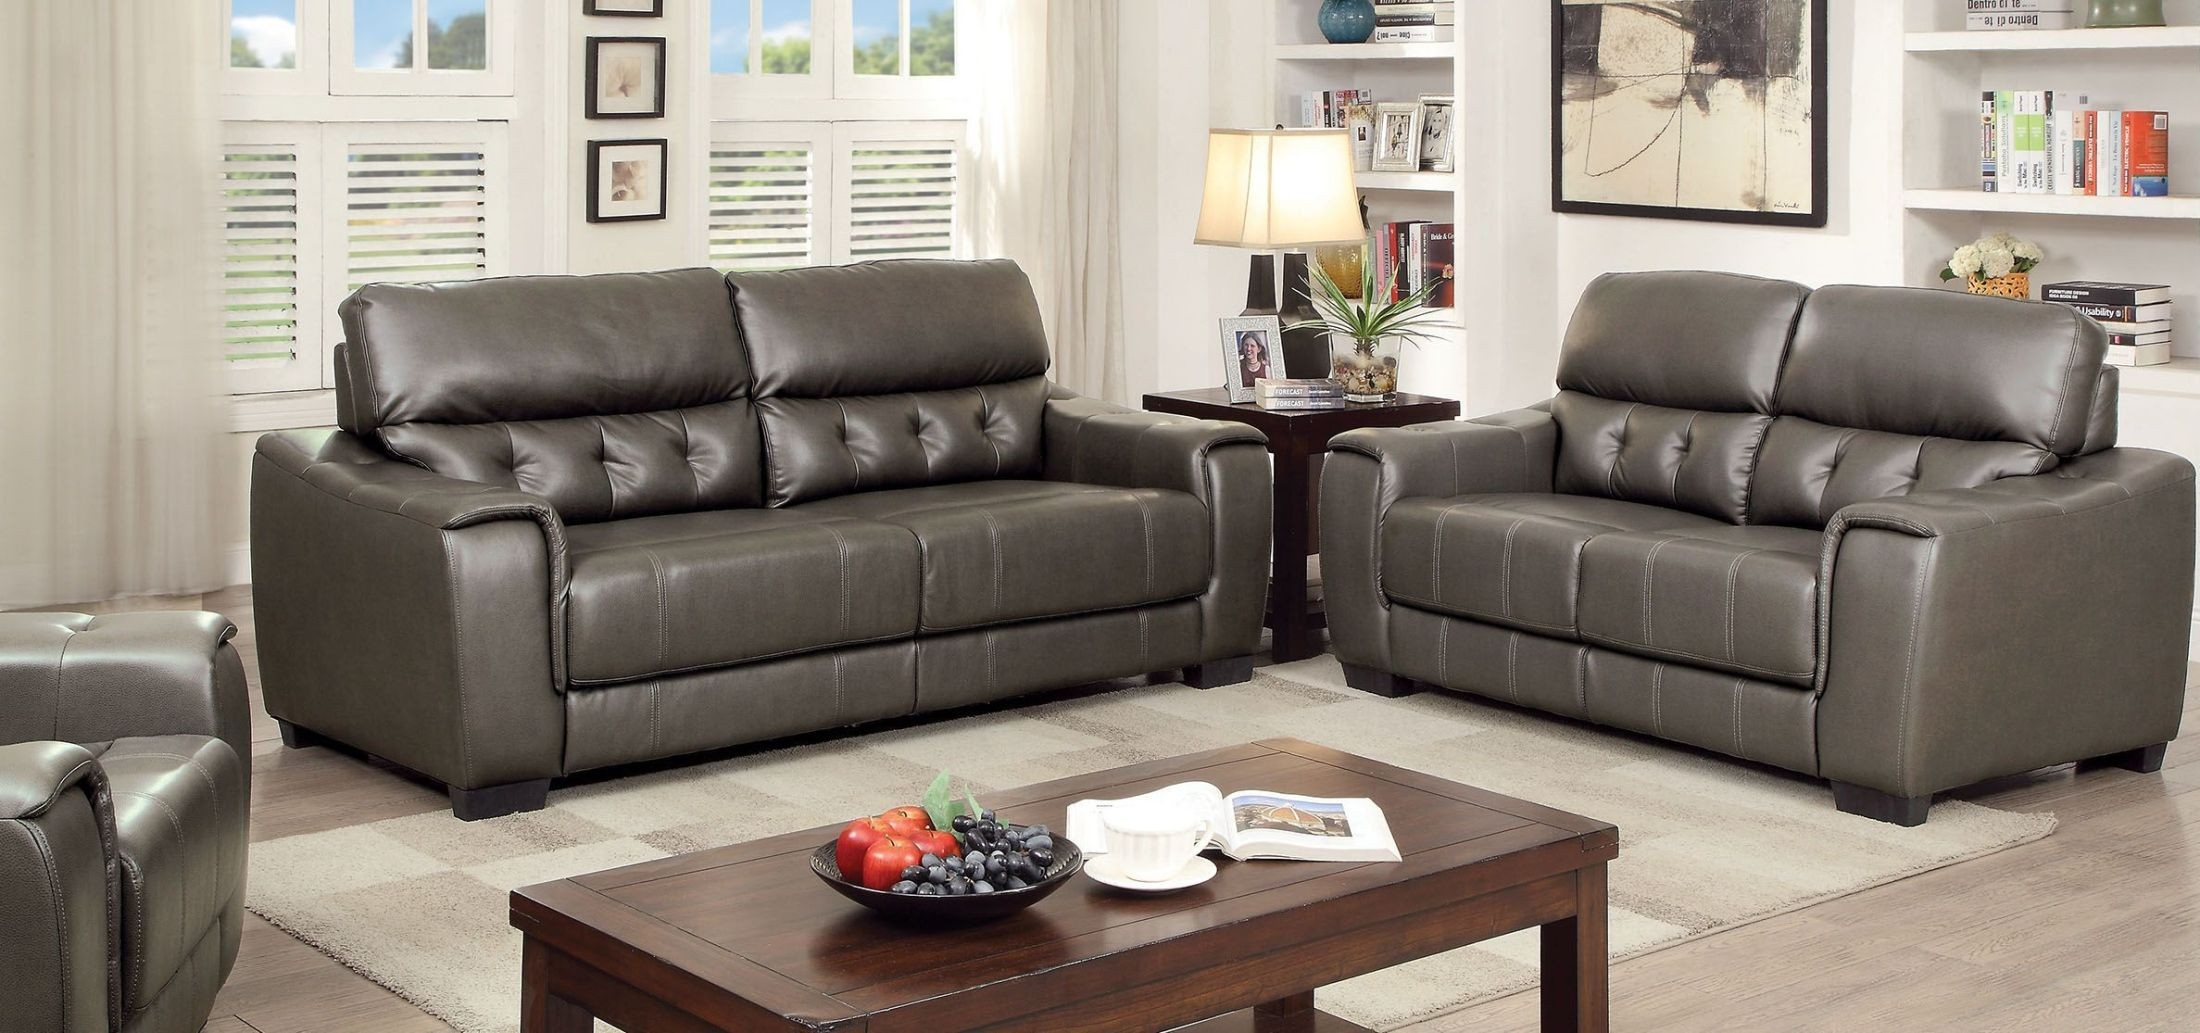 Randa Dark Gray Living Room Set Cm6797 Sf Furniture Of